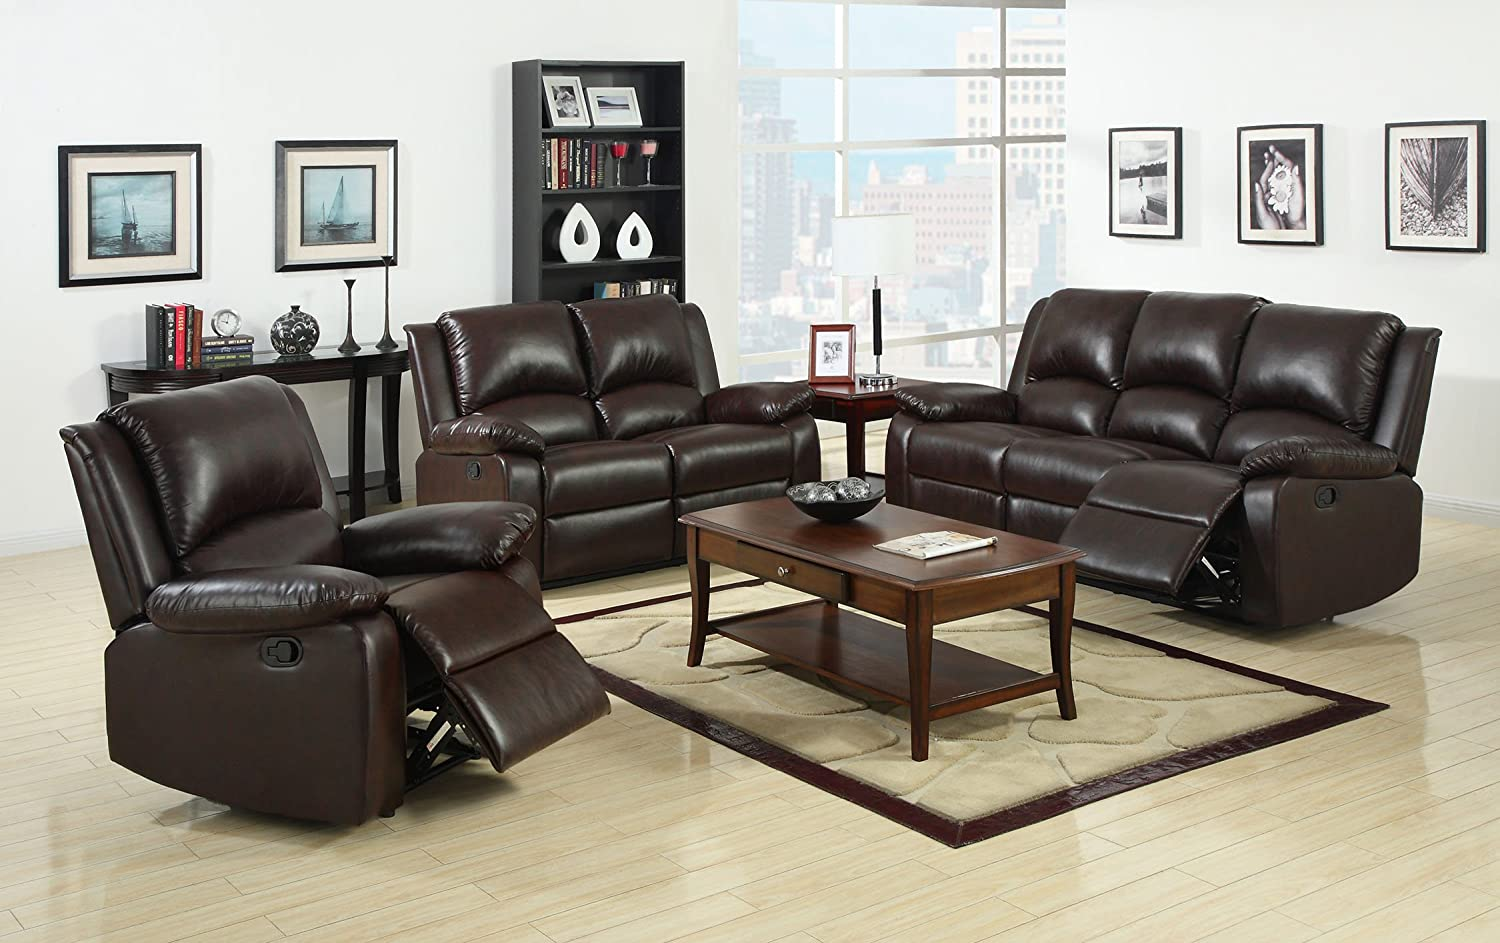 Strange Furniture Of America Wulner 3 Piece Leatherette Recliner Sofa Set Rustic Dark Brown Finish Lamtechconsult Wood Chair Design Ideas Lamtechconsultcom